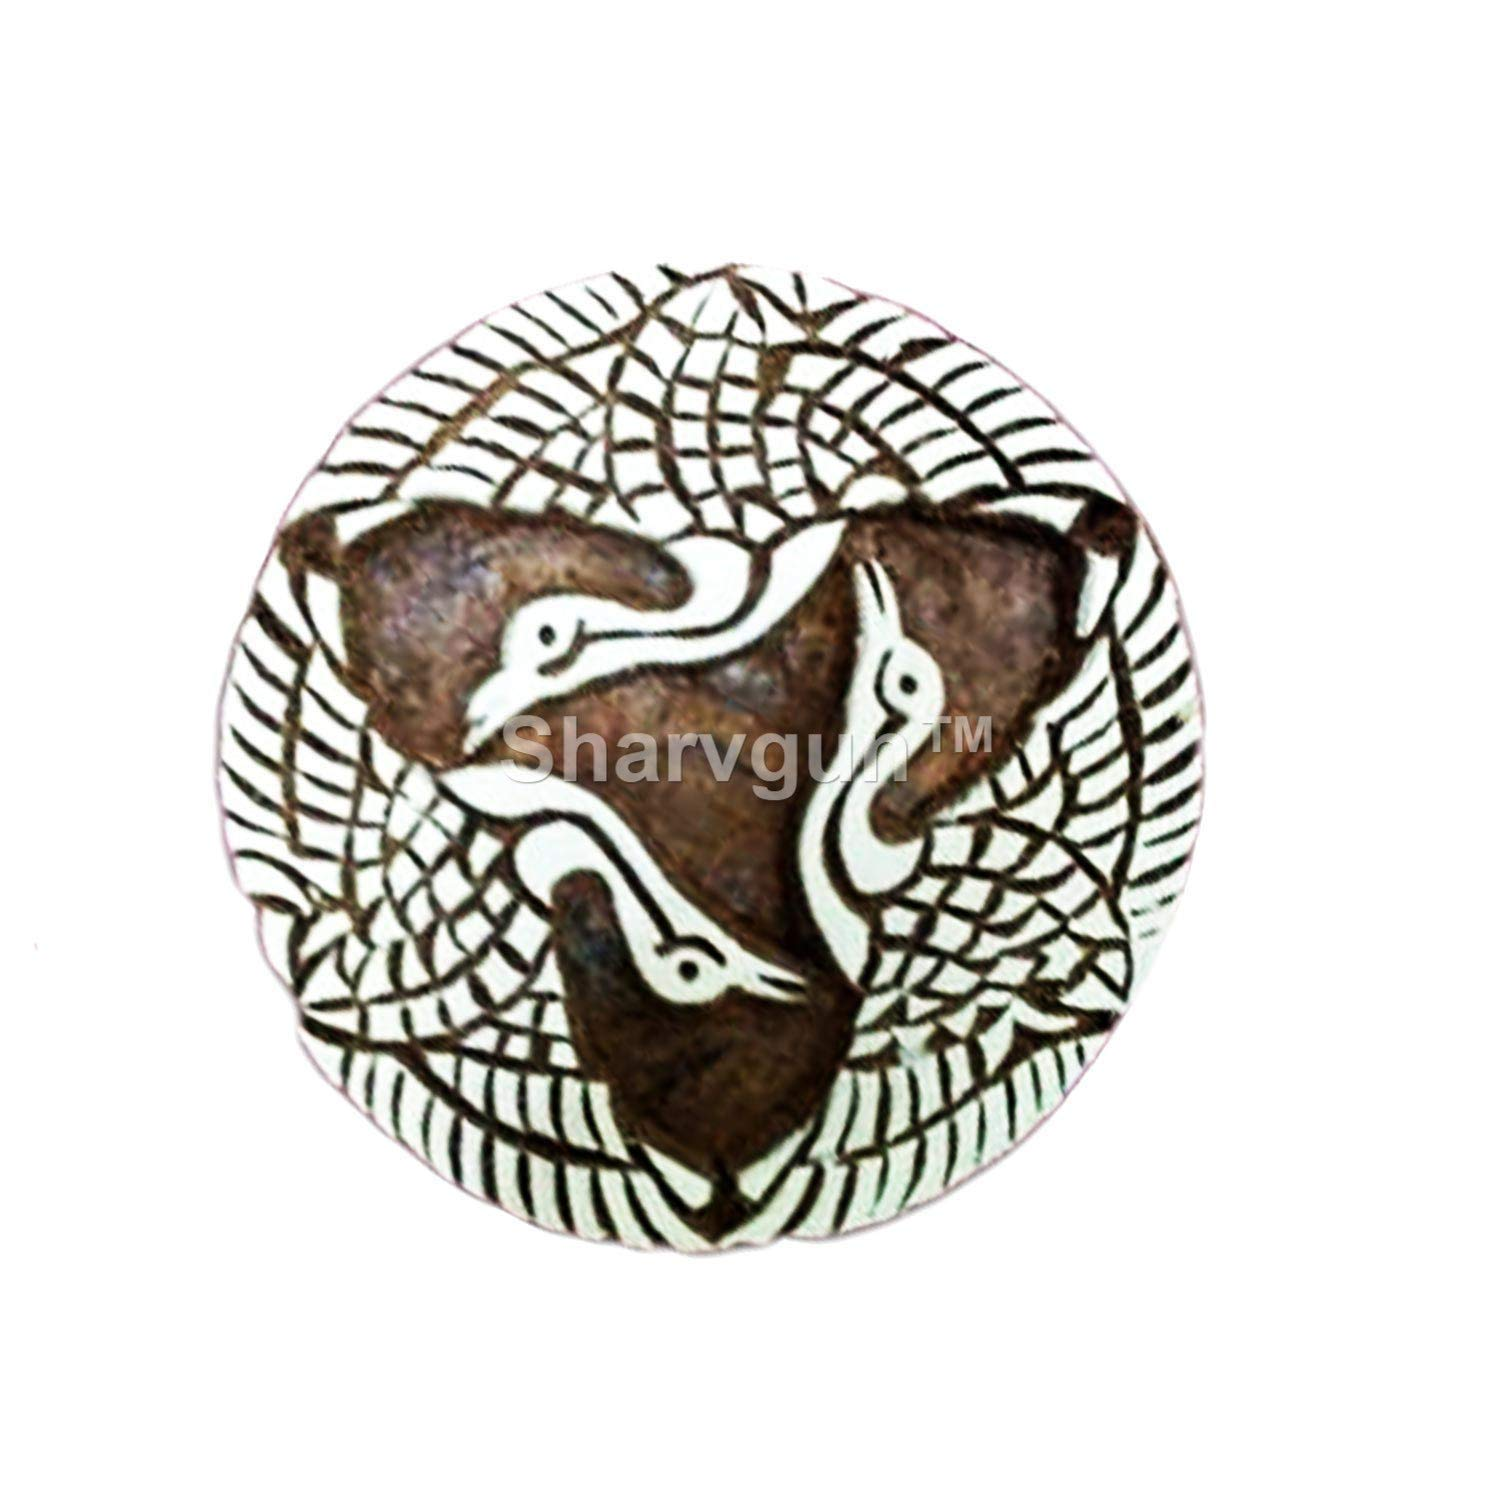 Sharvgun Three Birds in Round Wooden Textile Stamps Indian Print Blocks Pottery Clay Tattoo Scrapbook Art Stamp